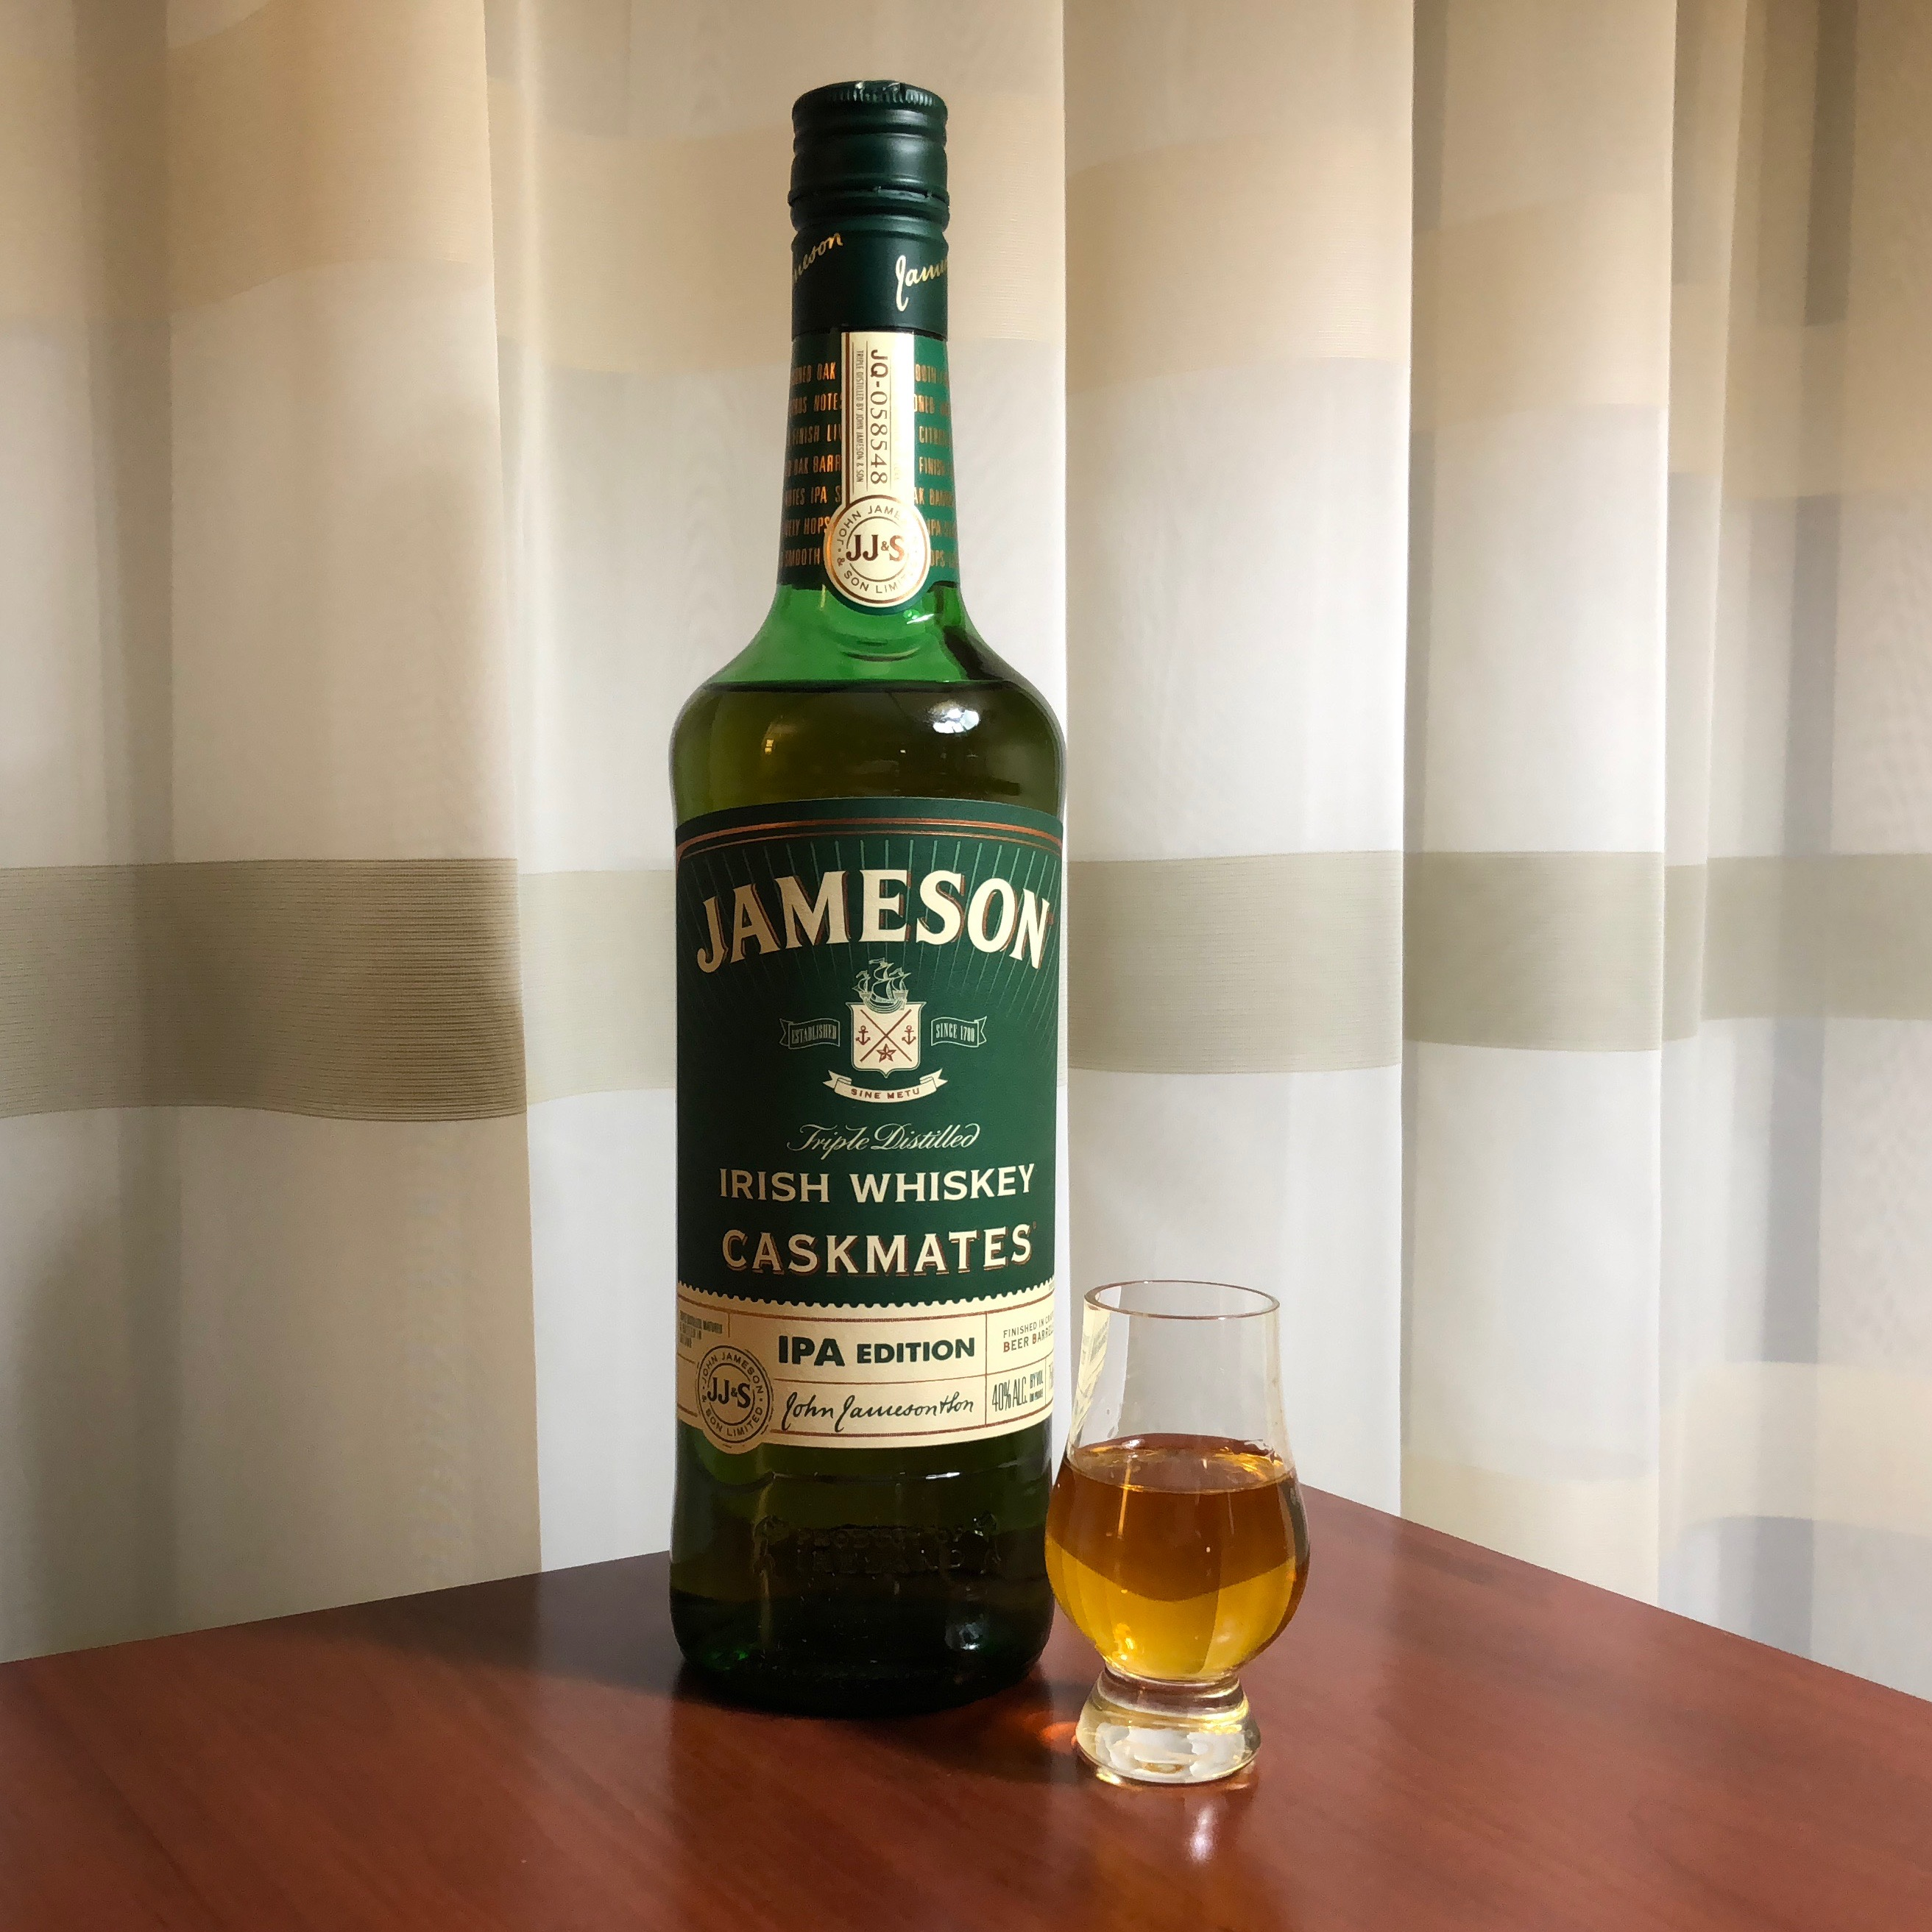 The new Jamesons Caskmates IPA Edition.